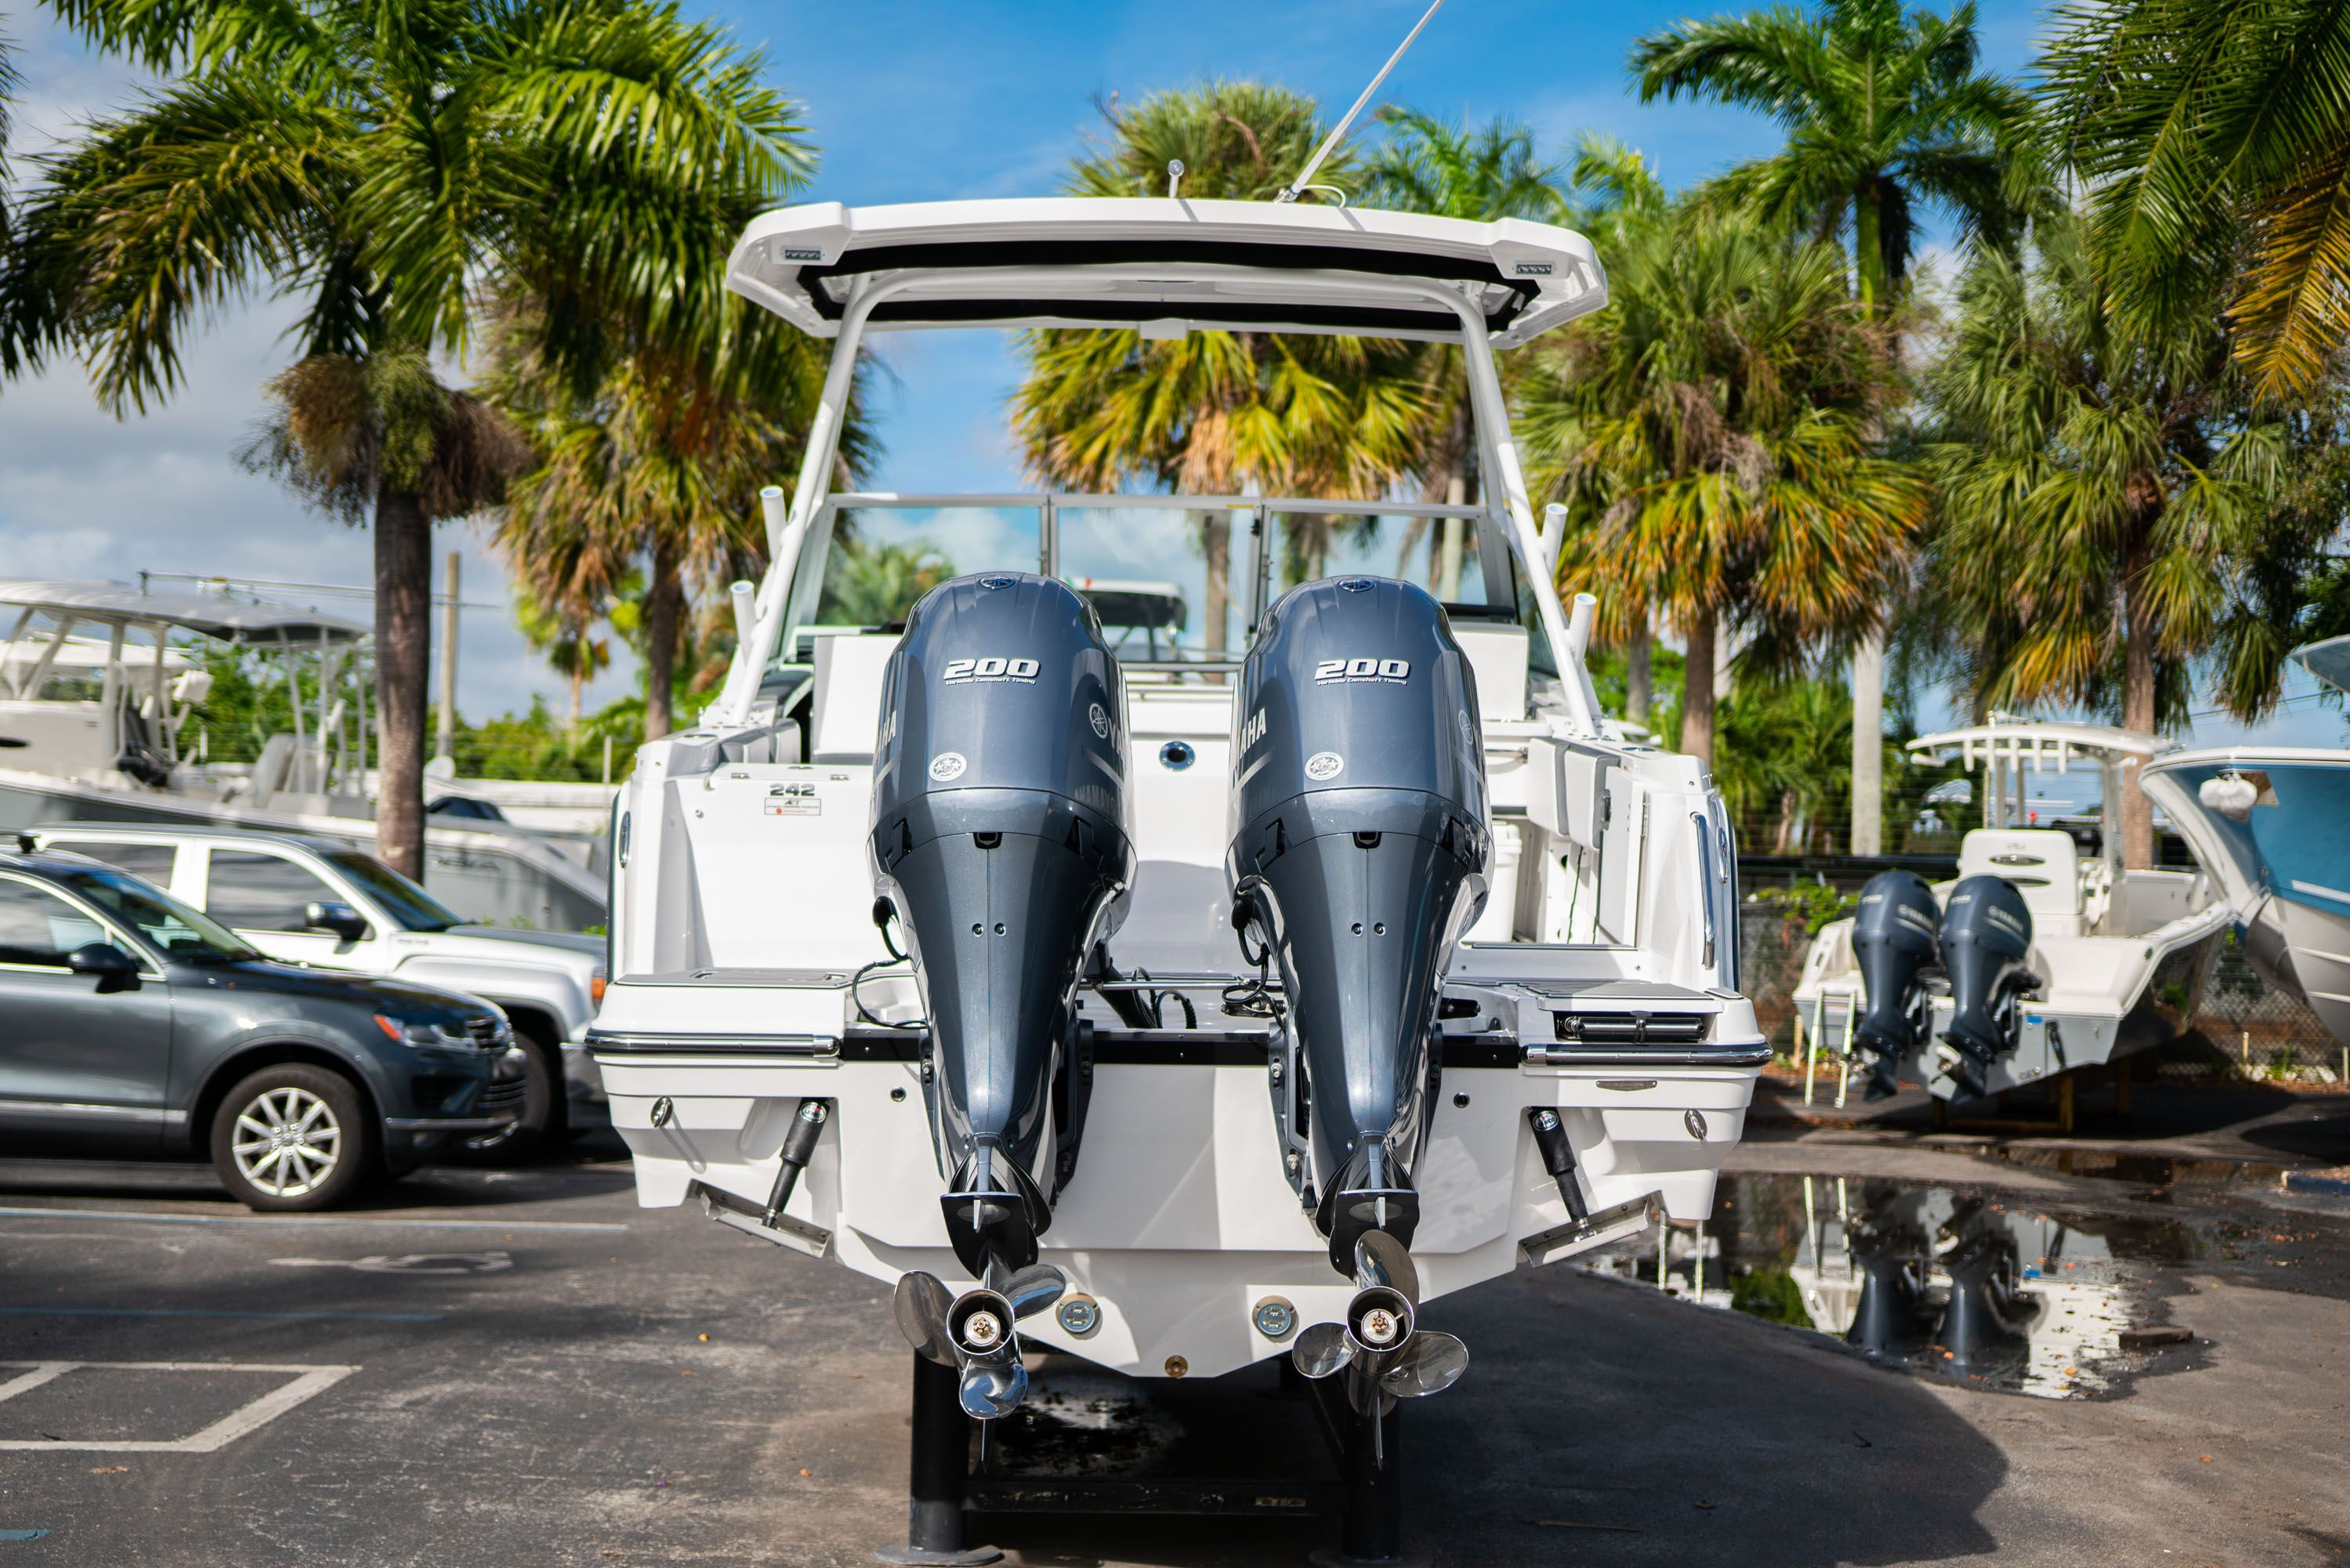 Thumbnail 10 for New 2020 Blackfin 242DC Dual Console boat for sale in West Palm Beach, FL